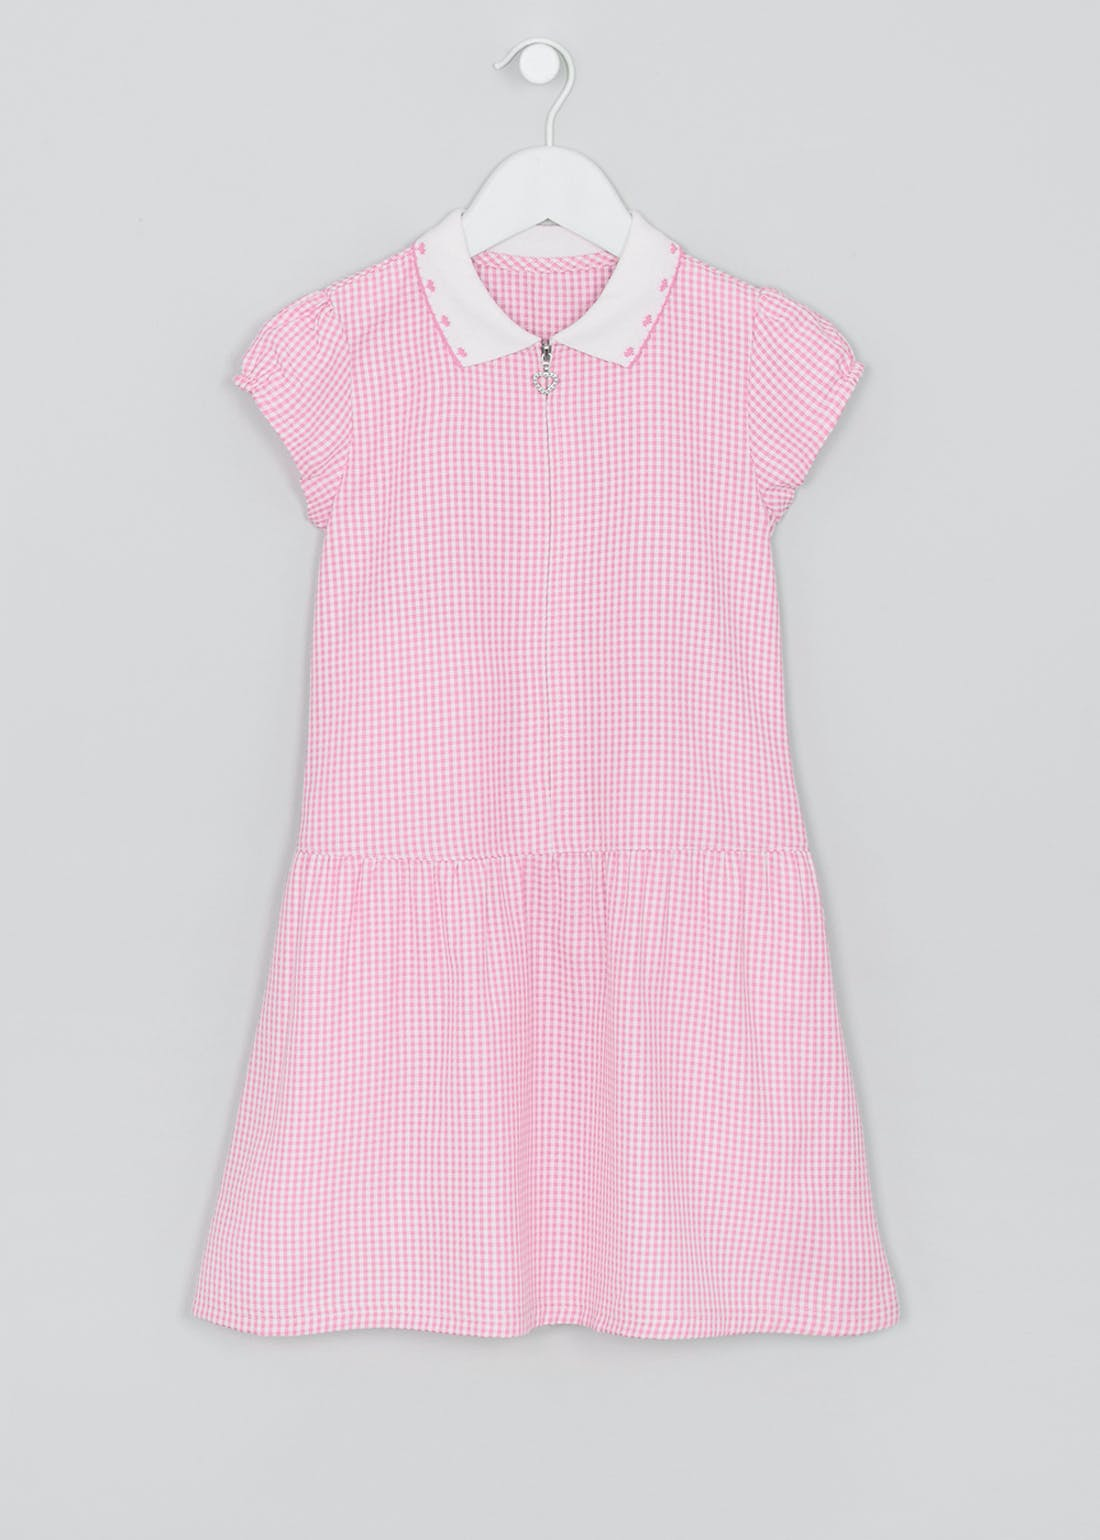 Girls Pink Generous Fit Knit Collar Gingham School Dress (3-14yrs)